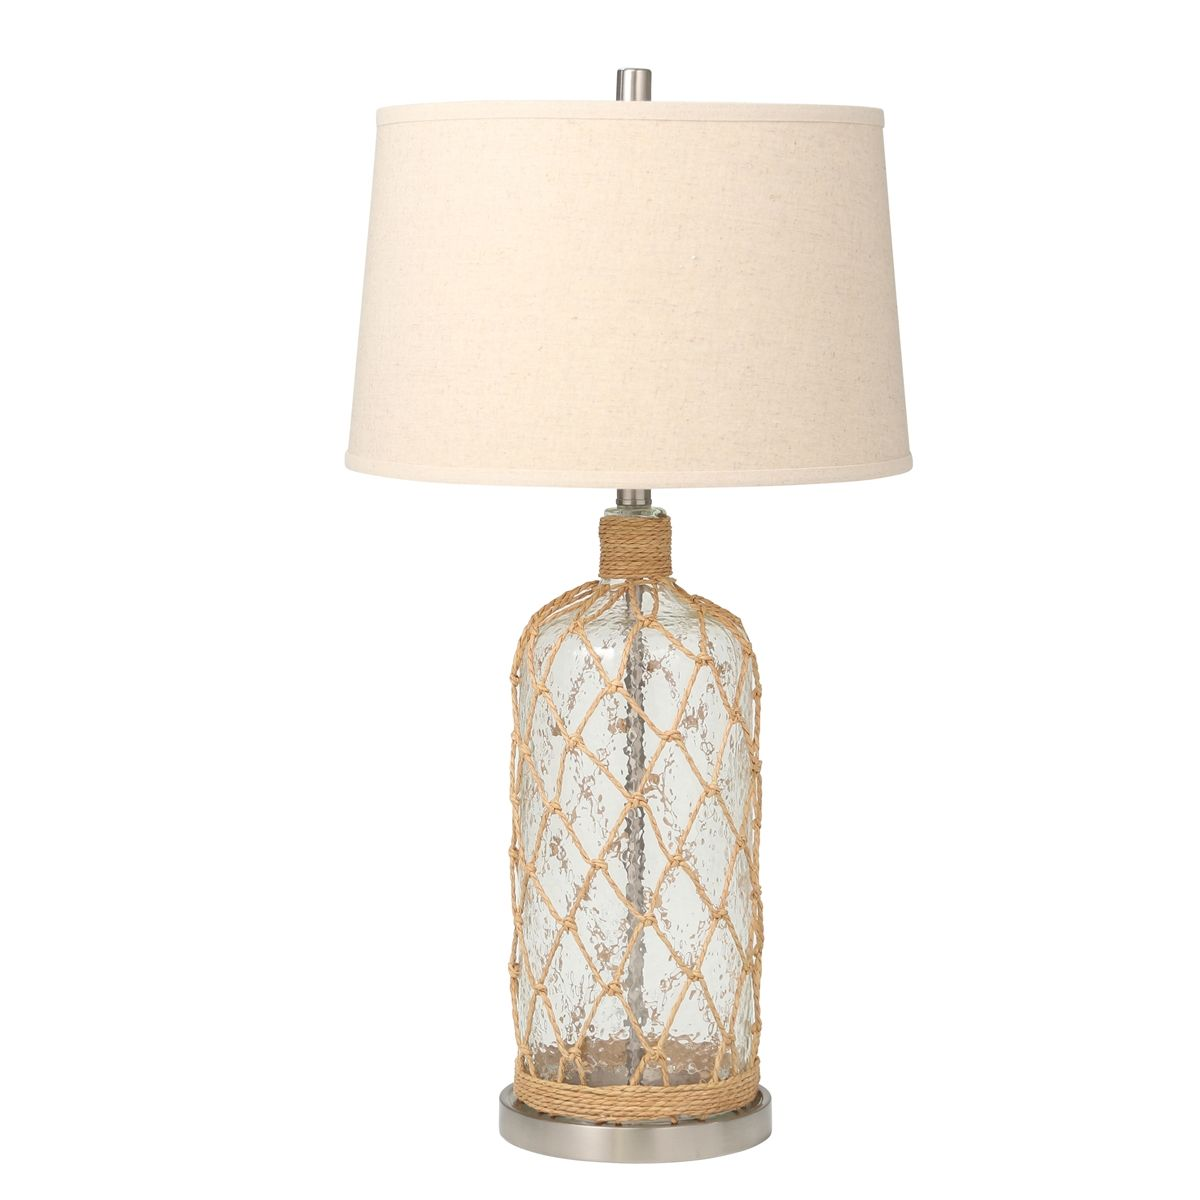 Glass And Metal Bottle Lamp That Has A Coastal Theme With A Rope Netting Design On The Lamp Body The Lamp Has A Silver Neck Socket Table Lamp Lamp Bottle Lamp